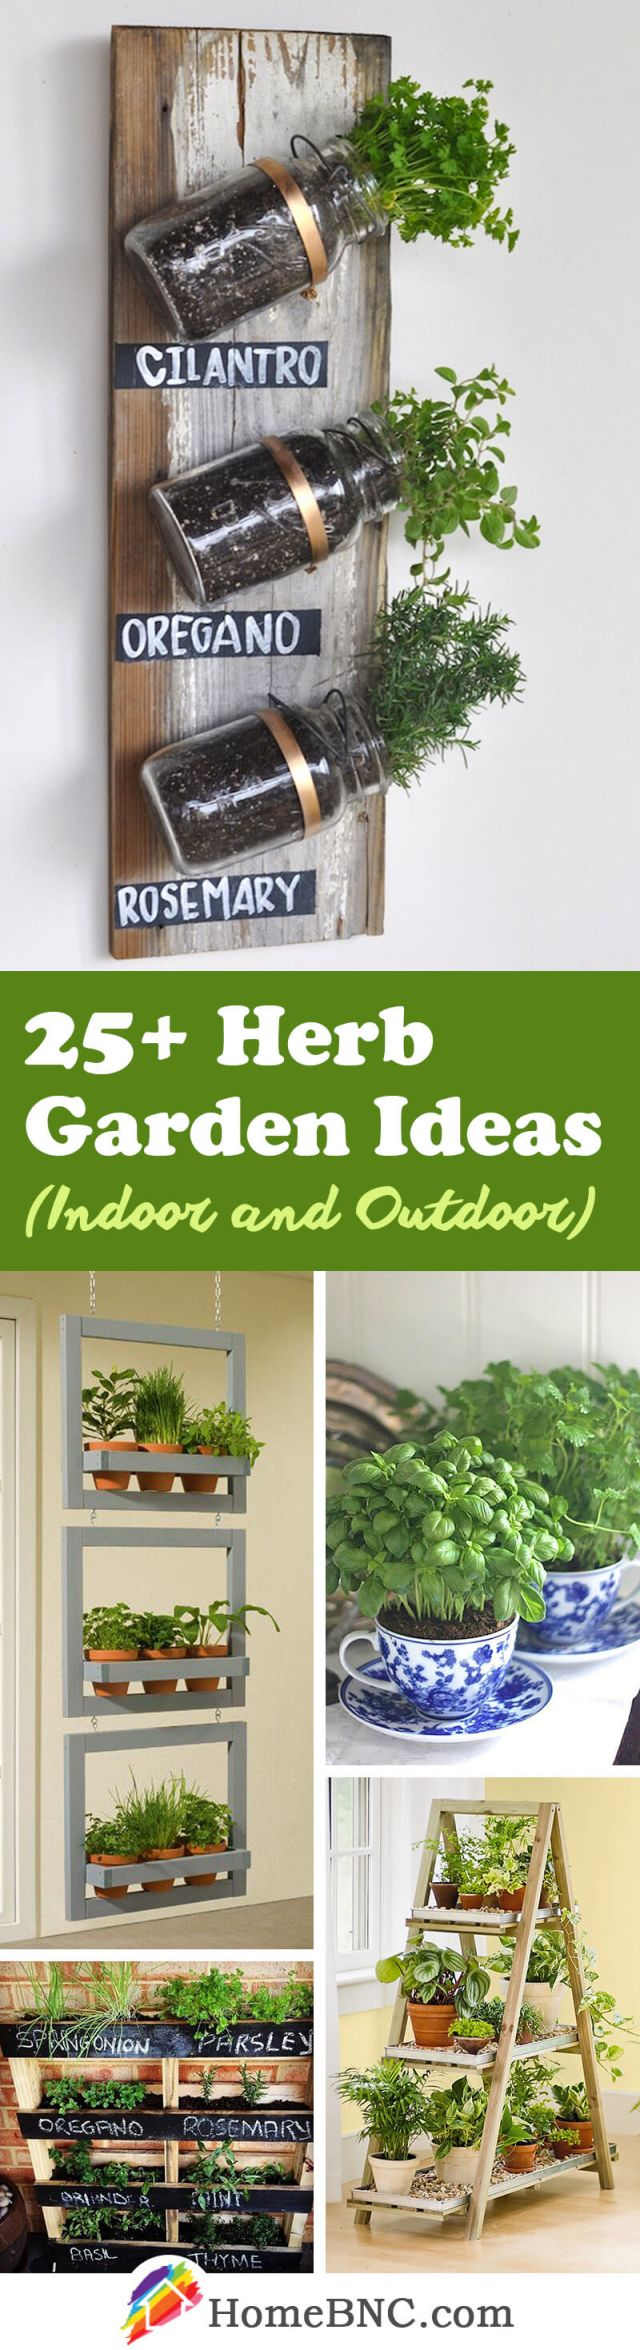 Awesome indoor herb garden ideas